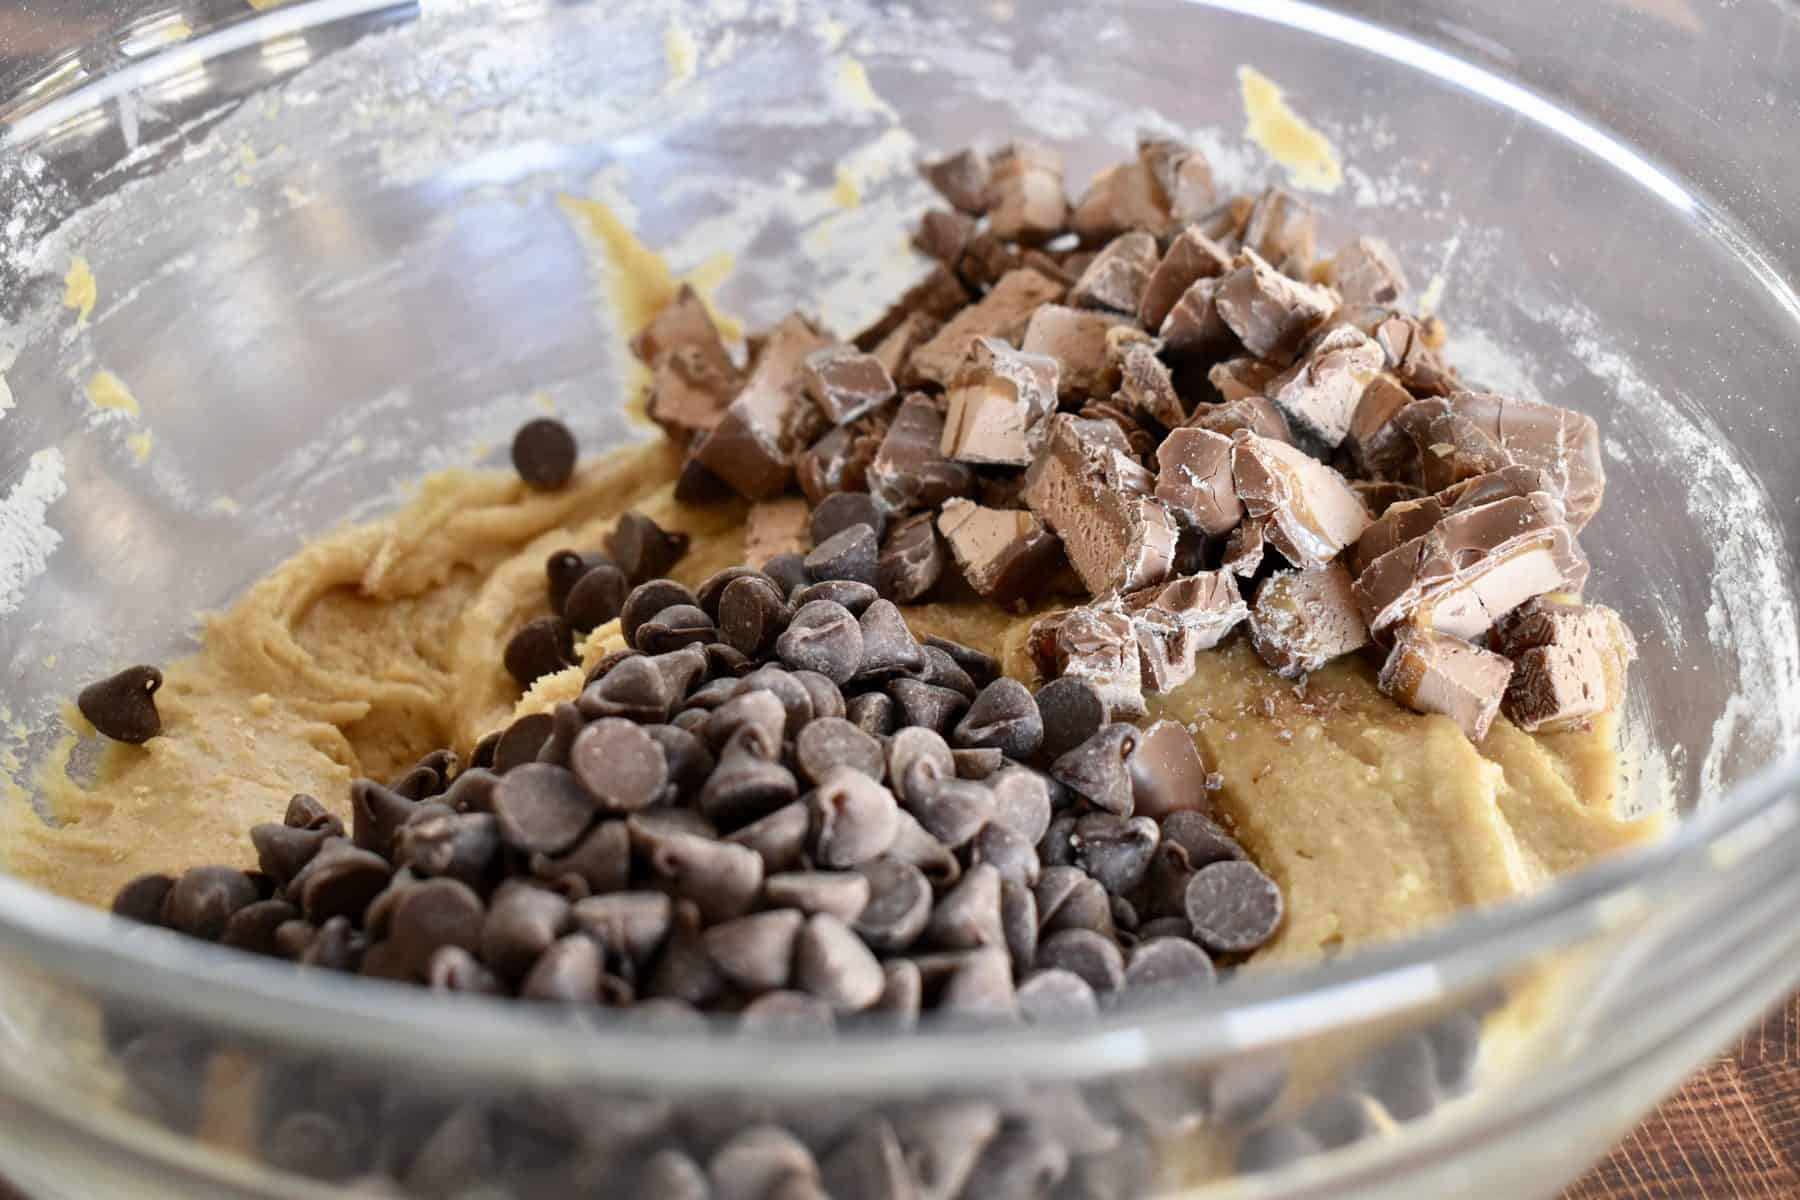 chunks of Milky Way and chocolate chips on top of the batter.